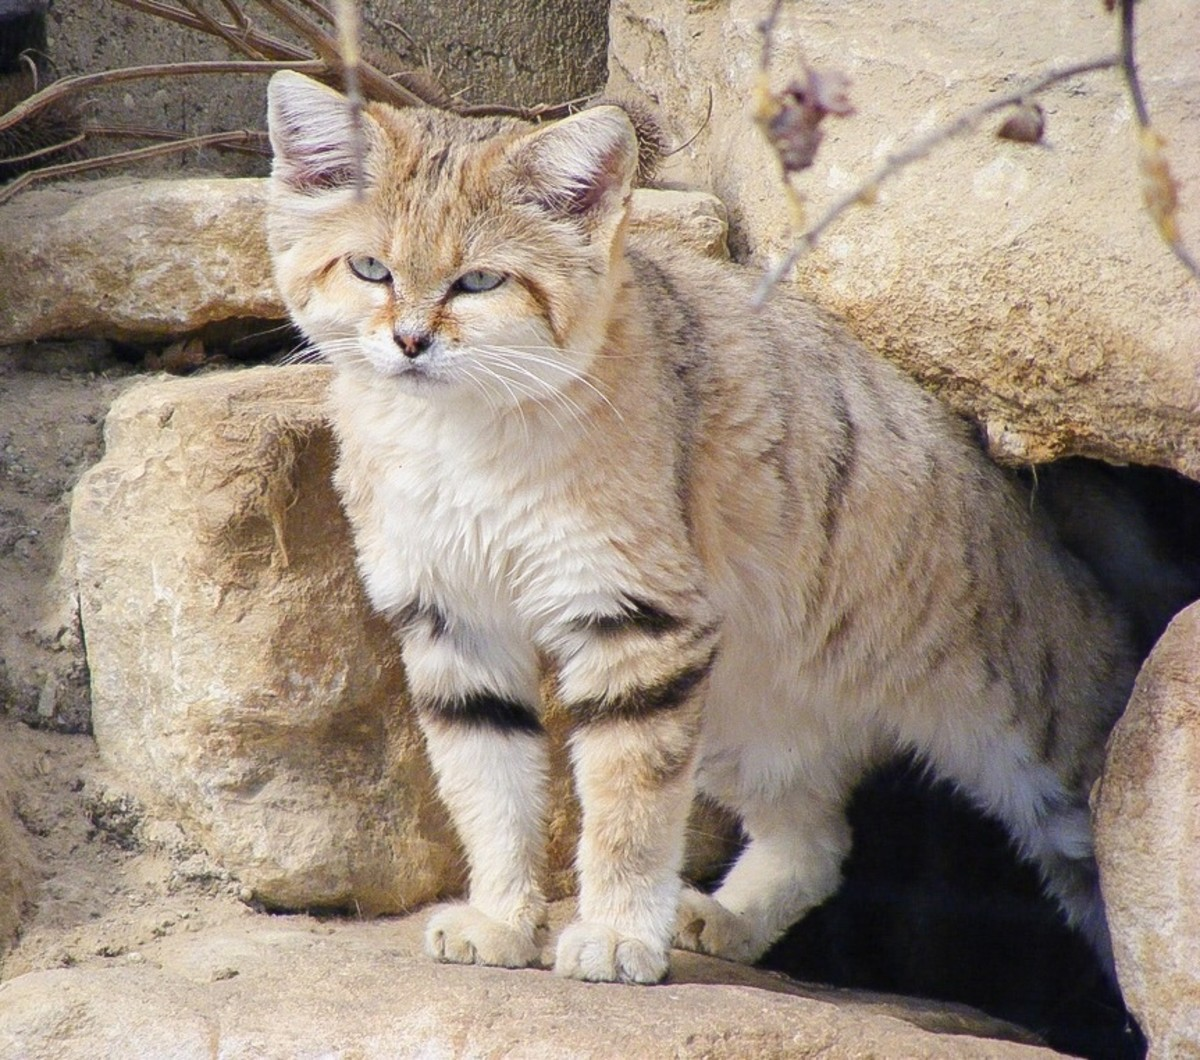 The Sand Cat: A Small and Beautiful Animal of the Desert